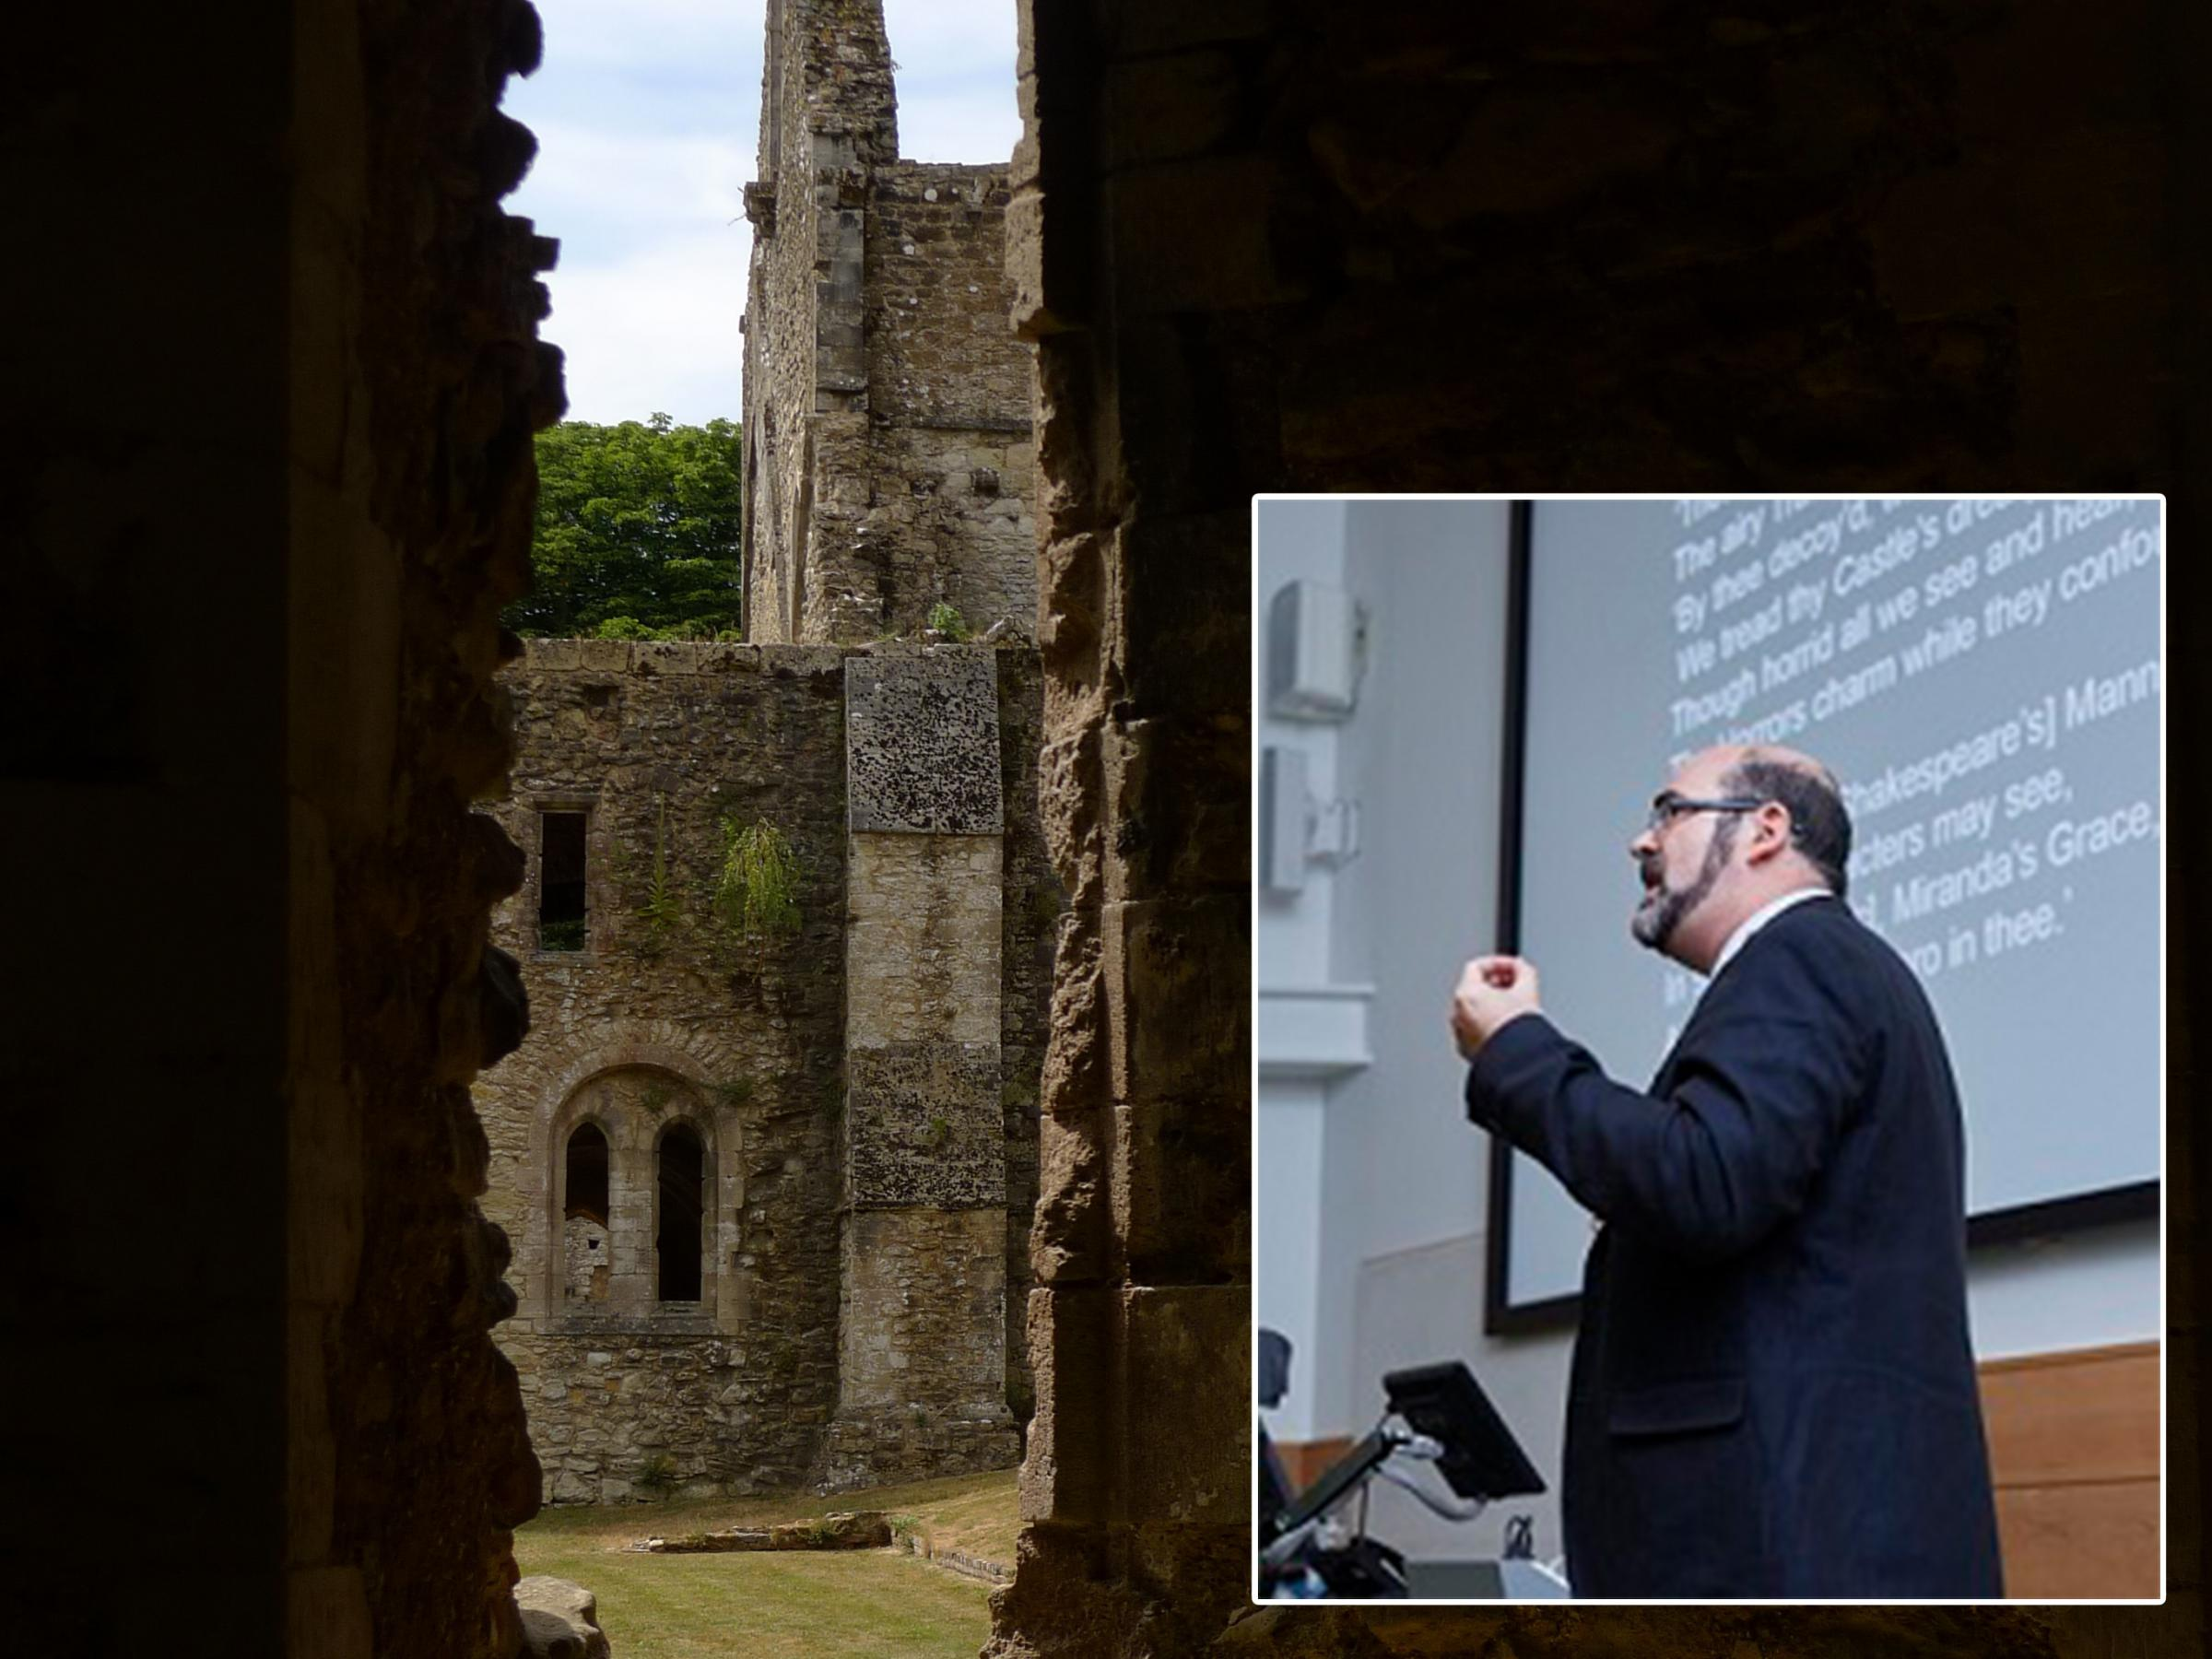 Dale Townshend: Literature, Art and Tourism at Netley Abbey, 1700-1850